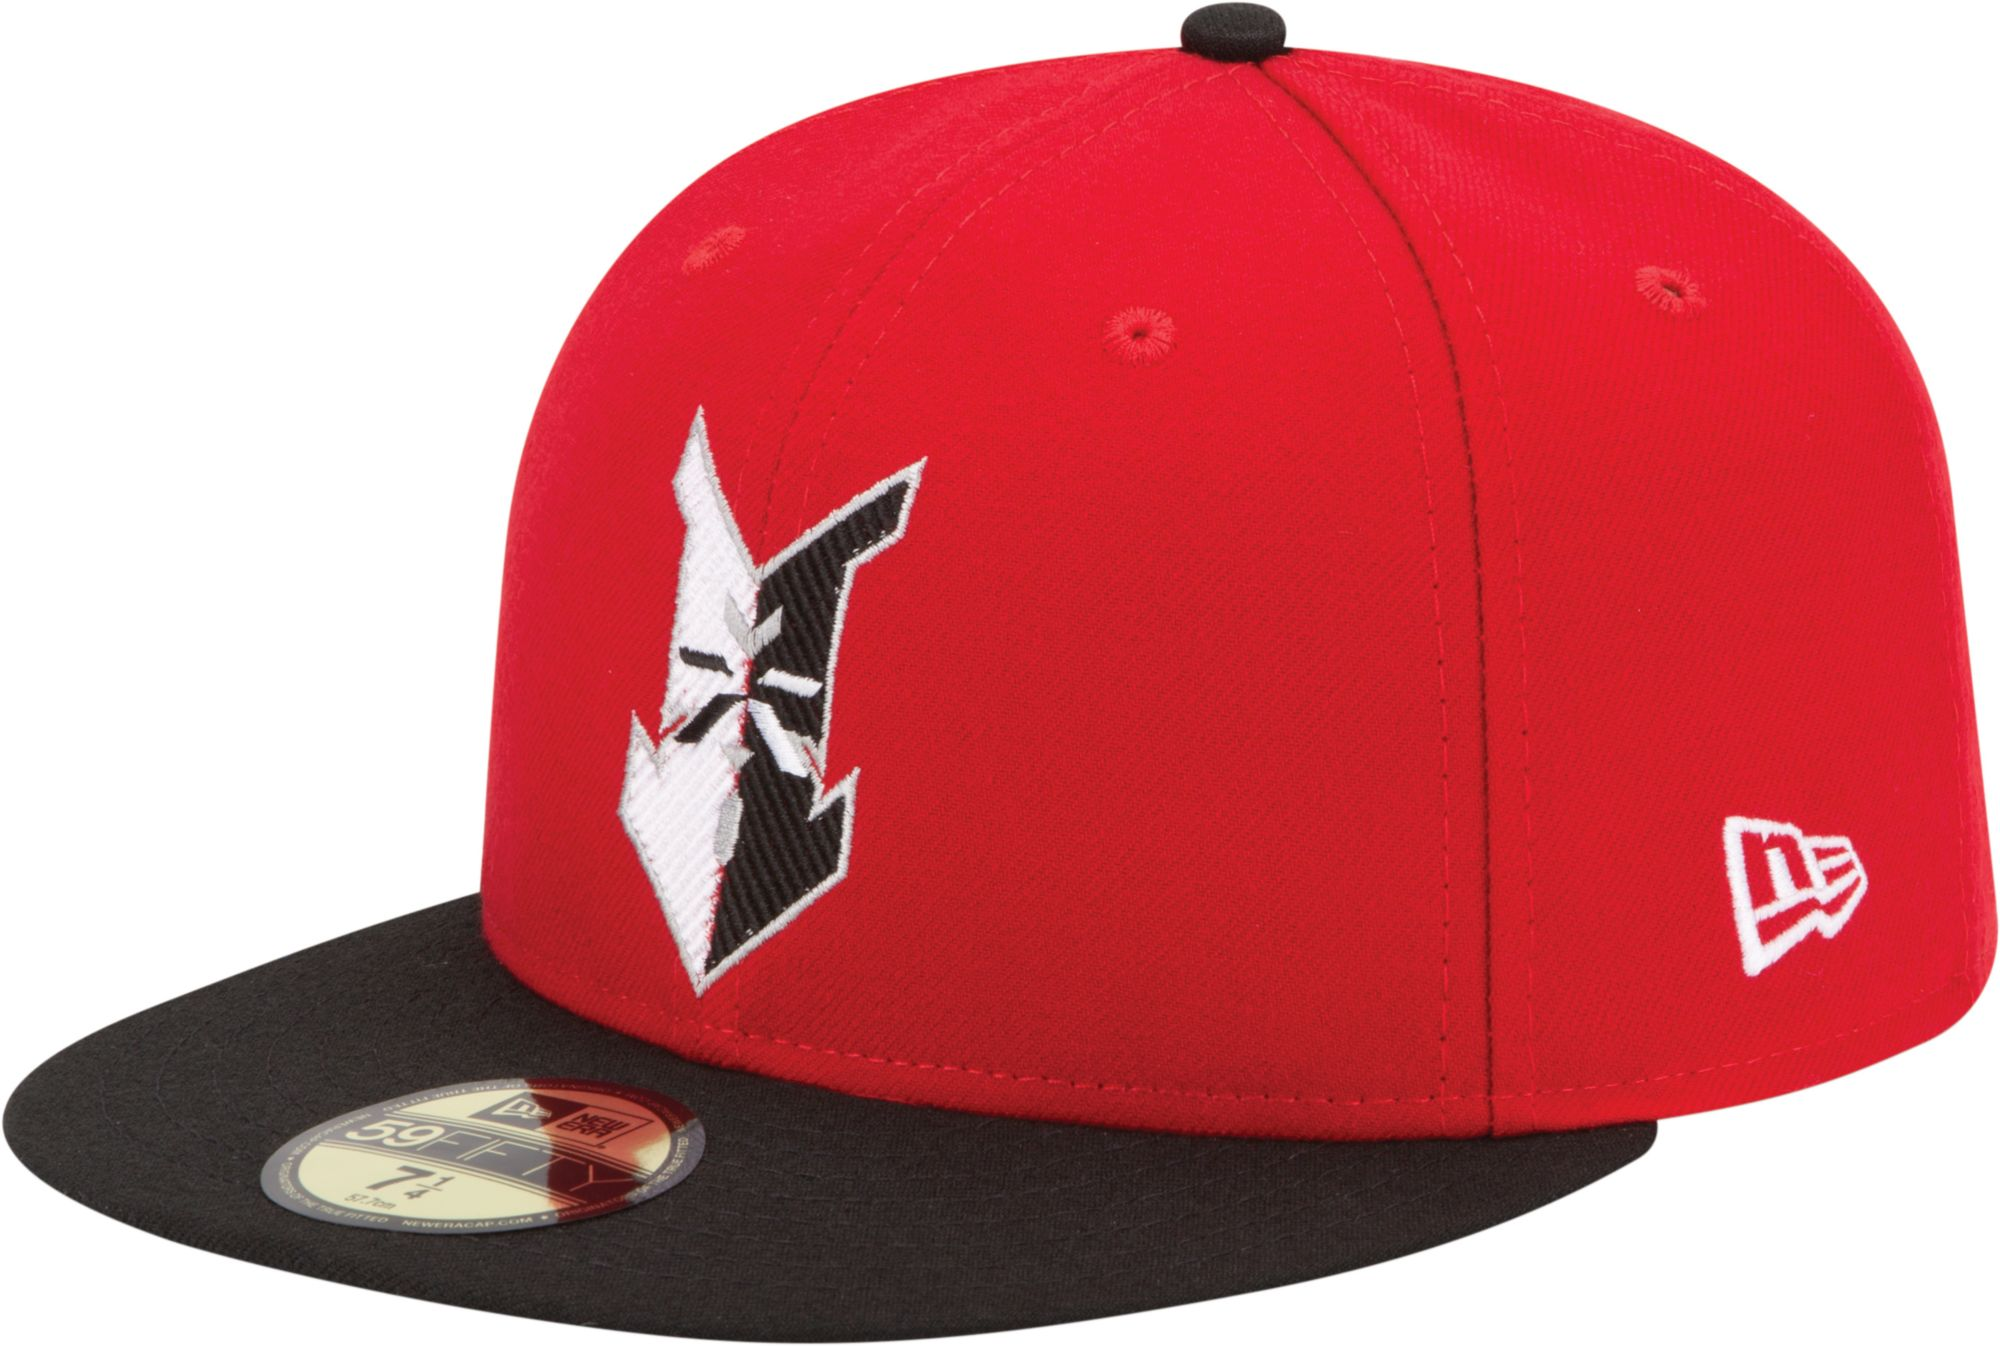 New Era Men's Indianapolis Indians 59Fifty Red/Black Authentic Hat, Size: 7 1/8, Multi